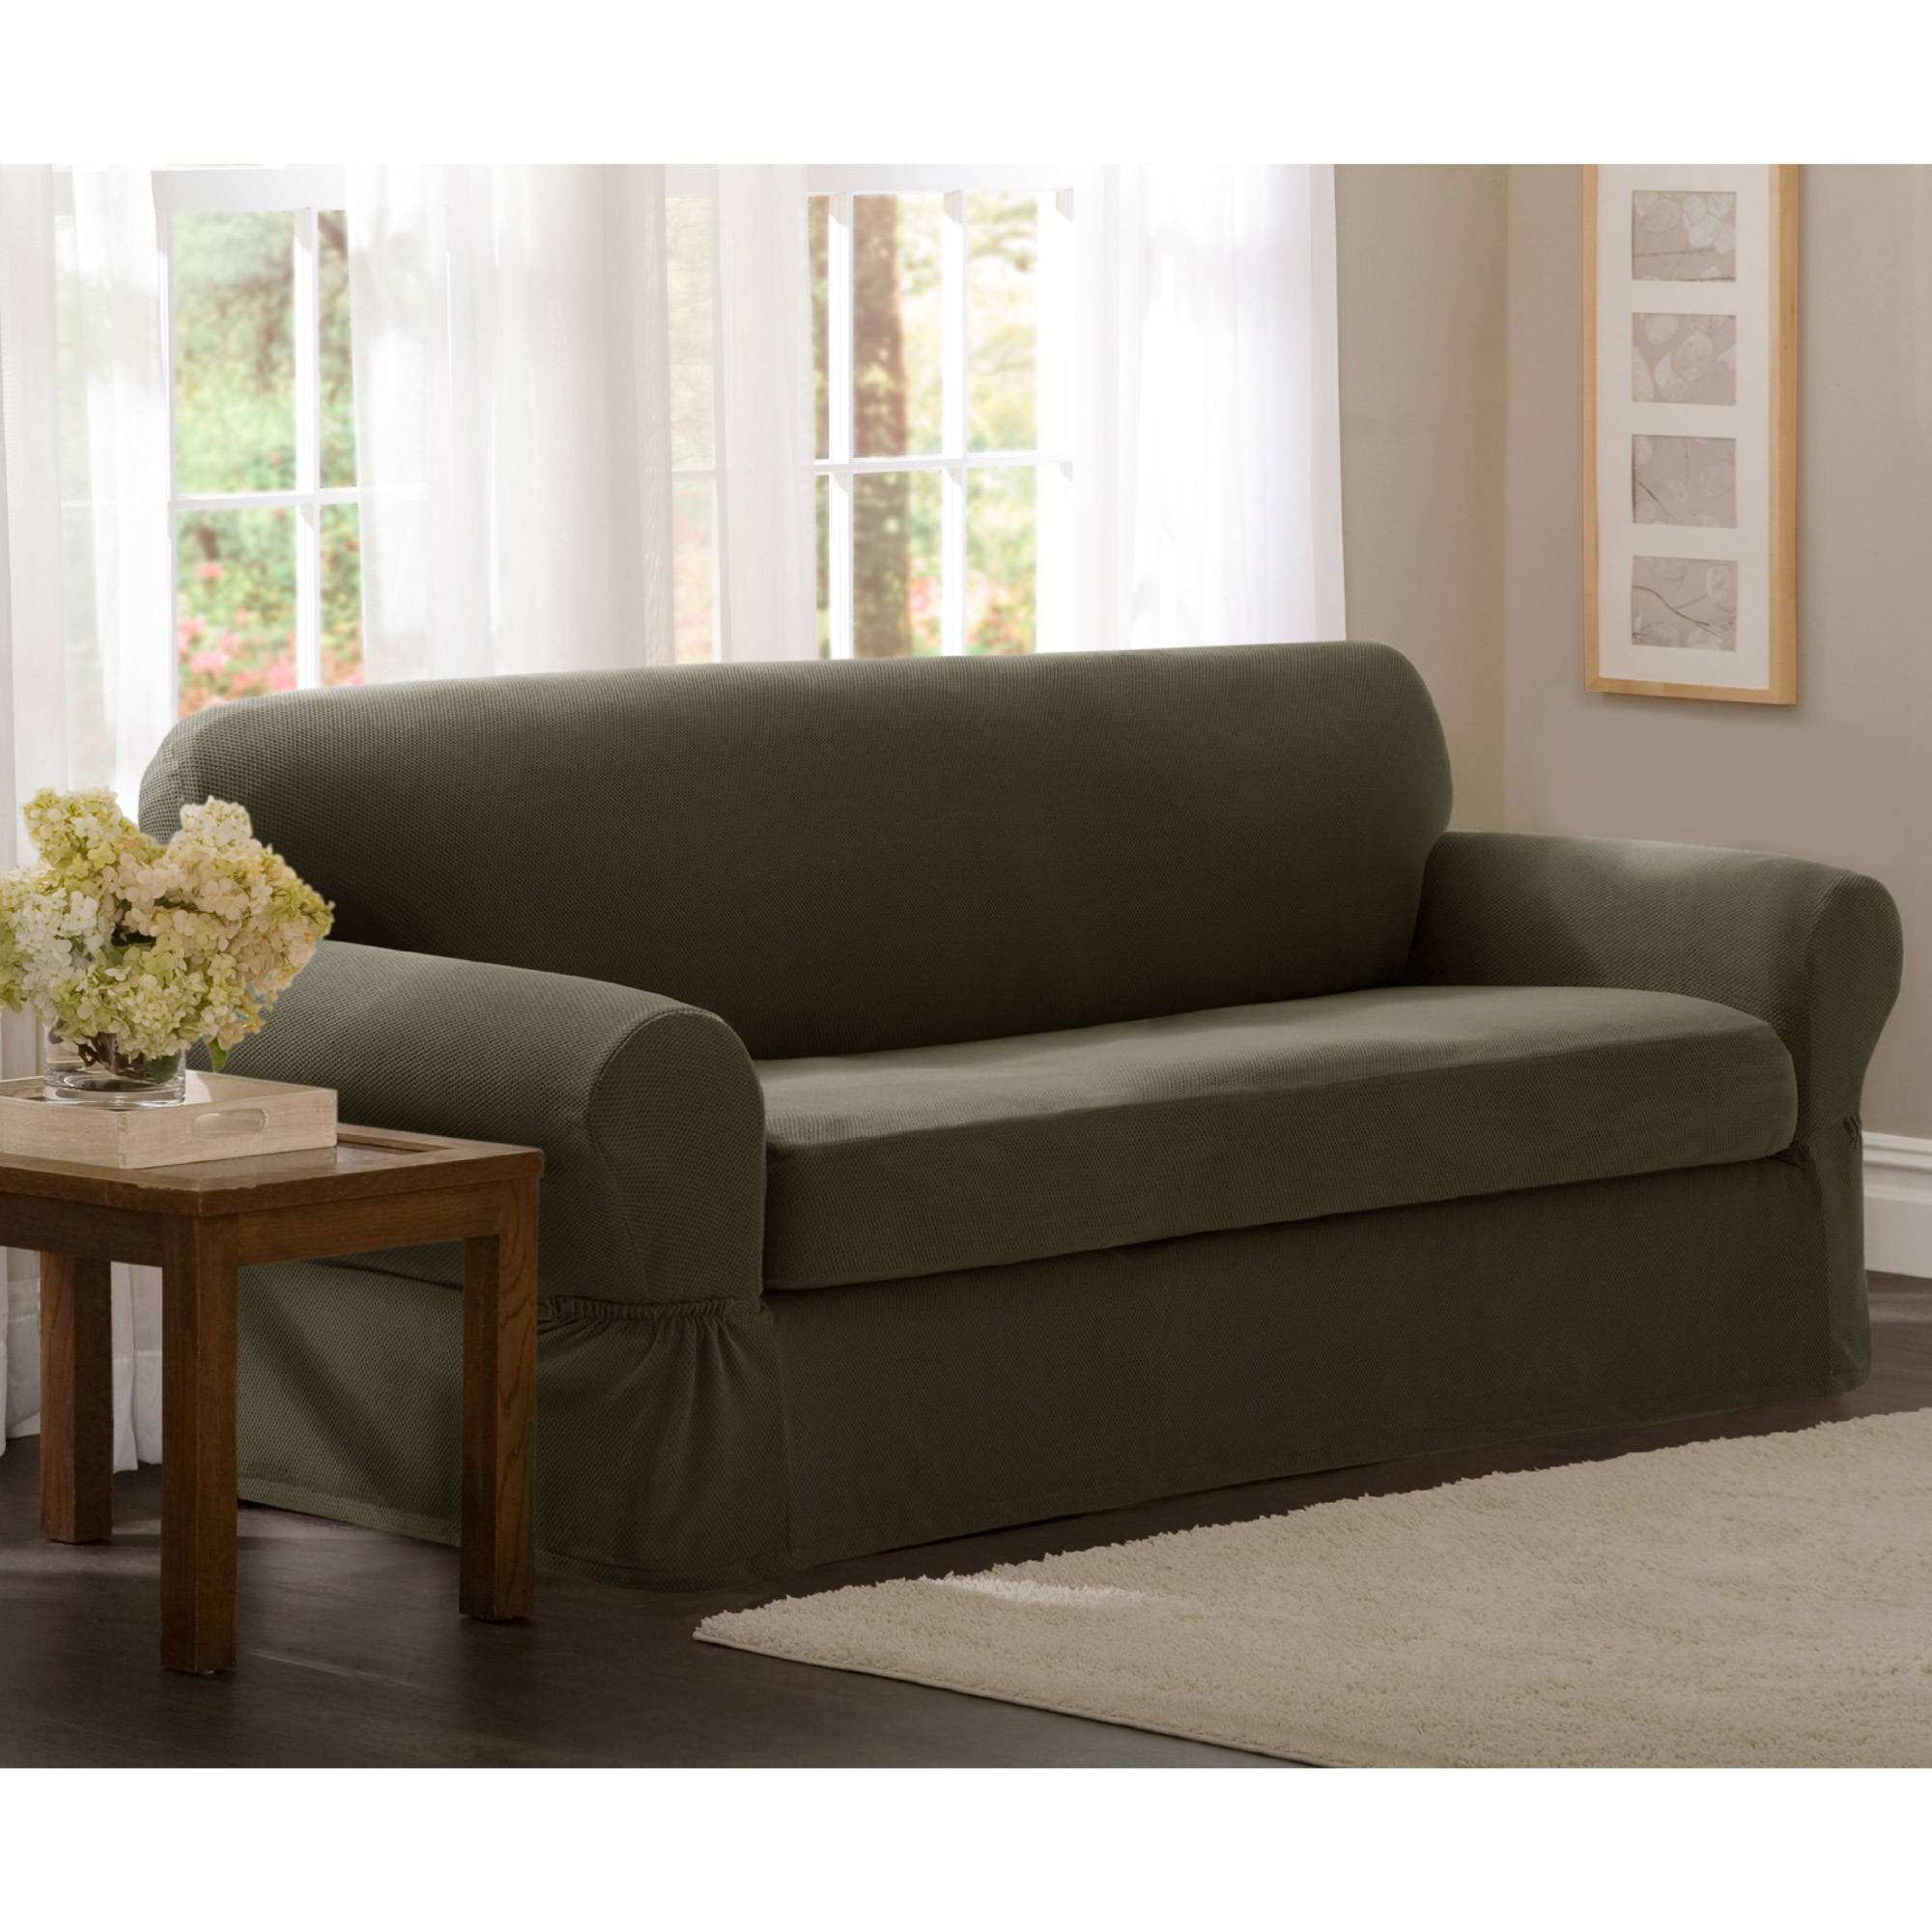 Cool couch and loveseat covers maytex stretch pixel 2-piece loveseat slipcover - walmart.com qqhsbum